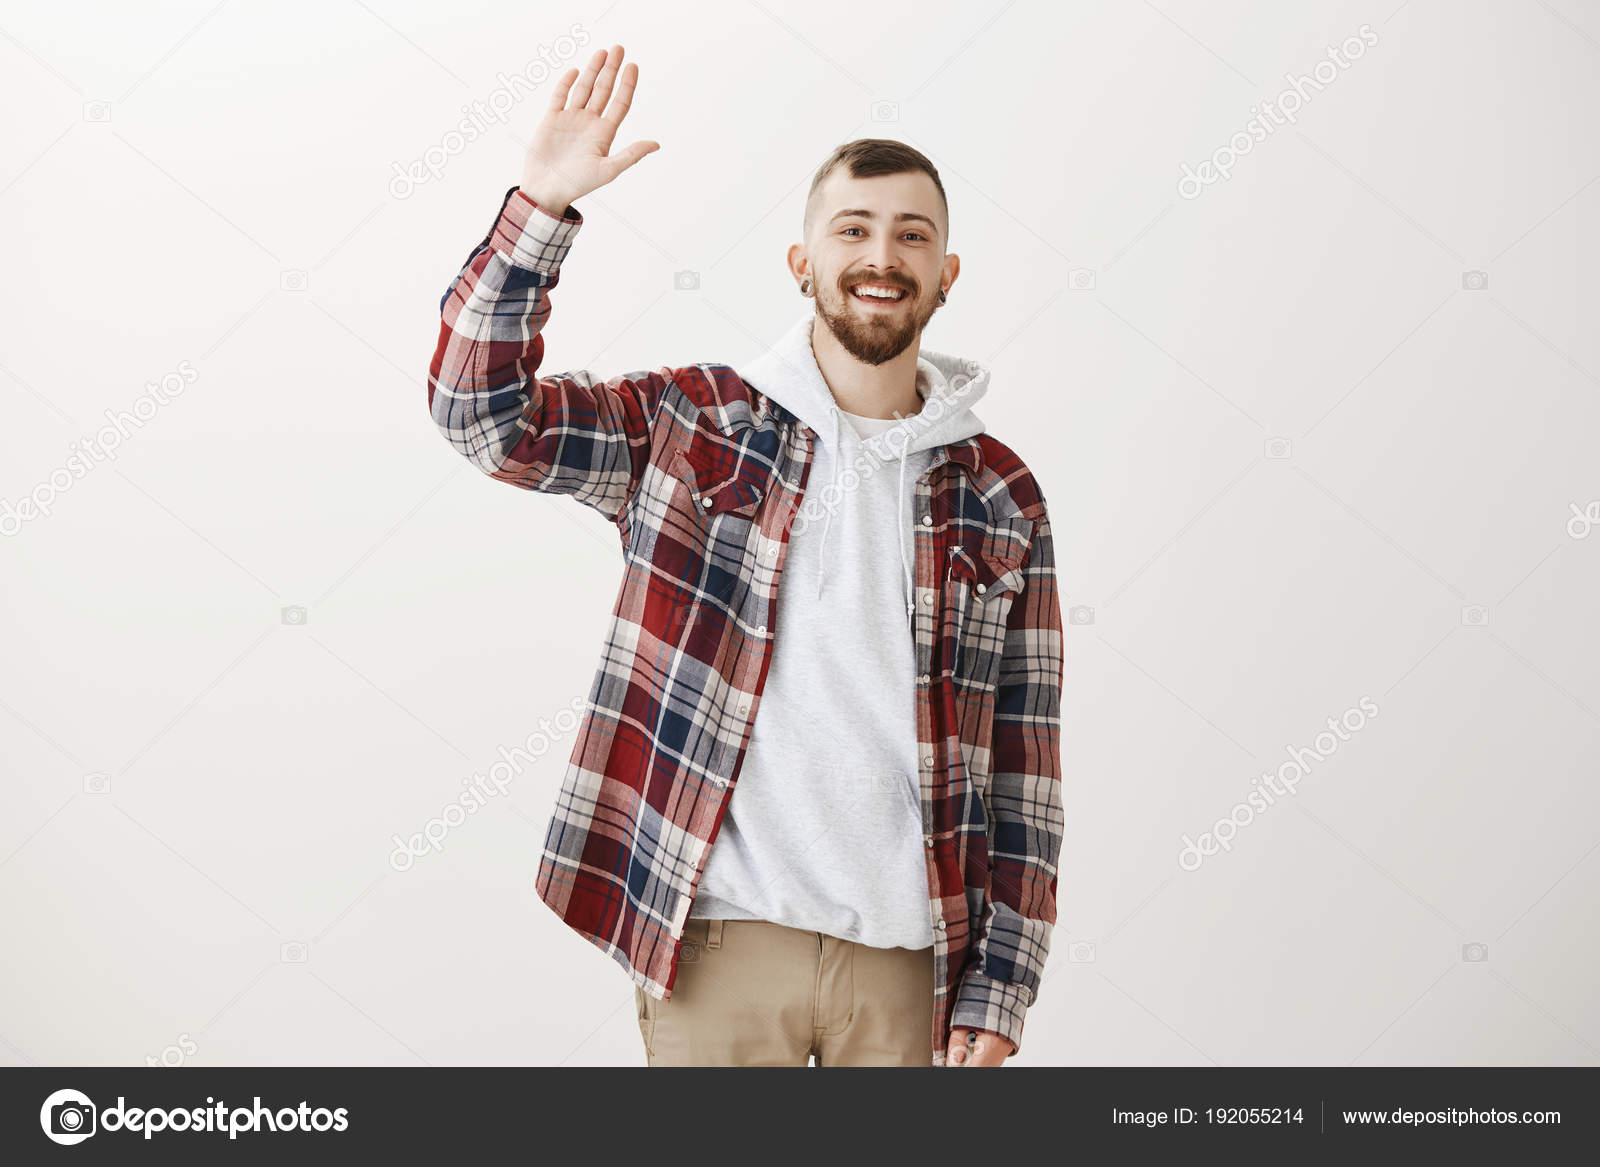 Carefree friendly male student in stylish clothes raising palm to carefree friendly male student in stylish clothes raising palm to give high five greeting m4hsunfo